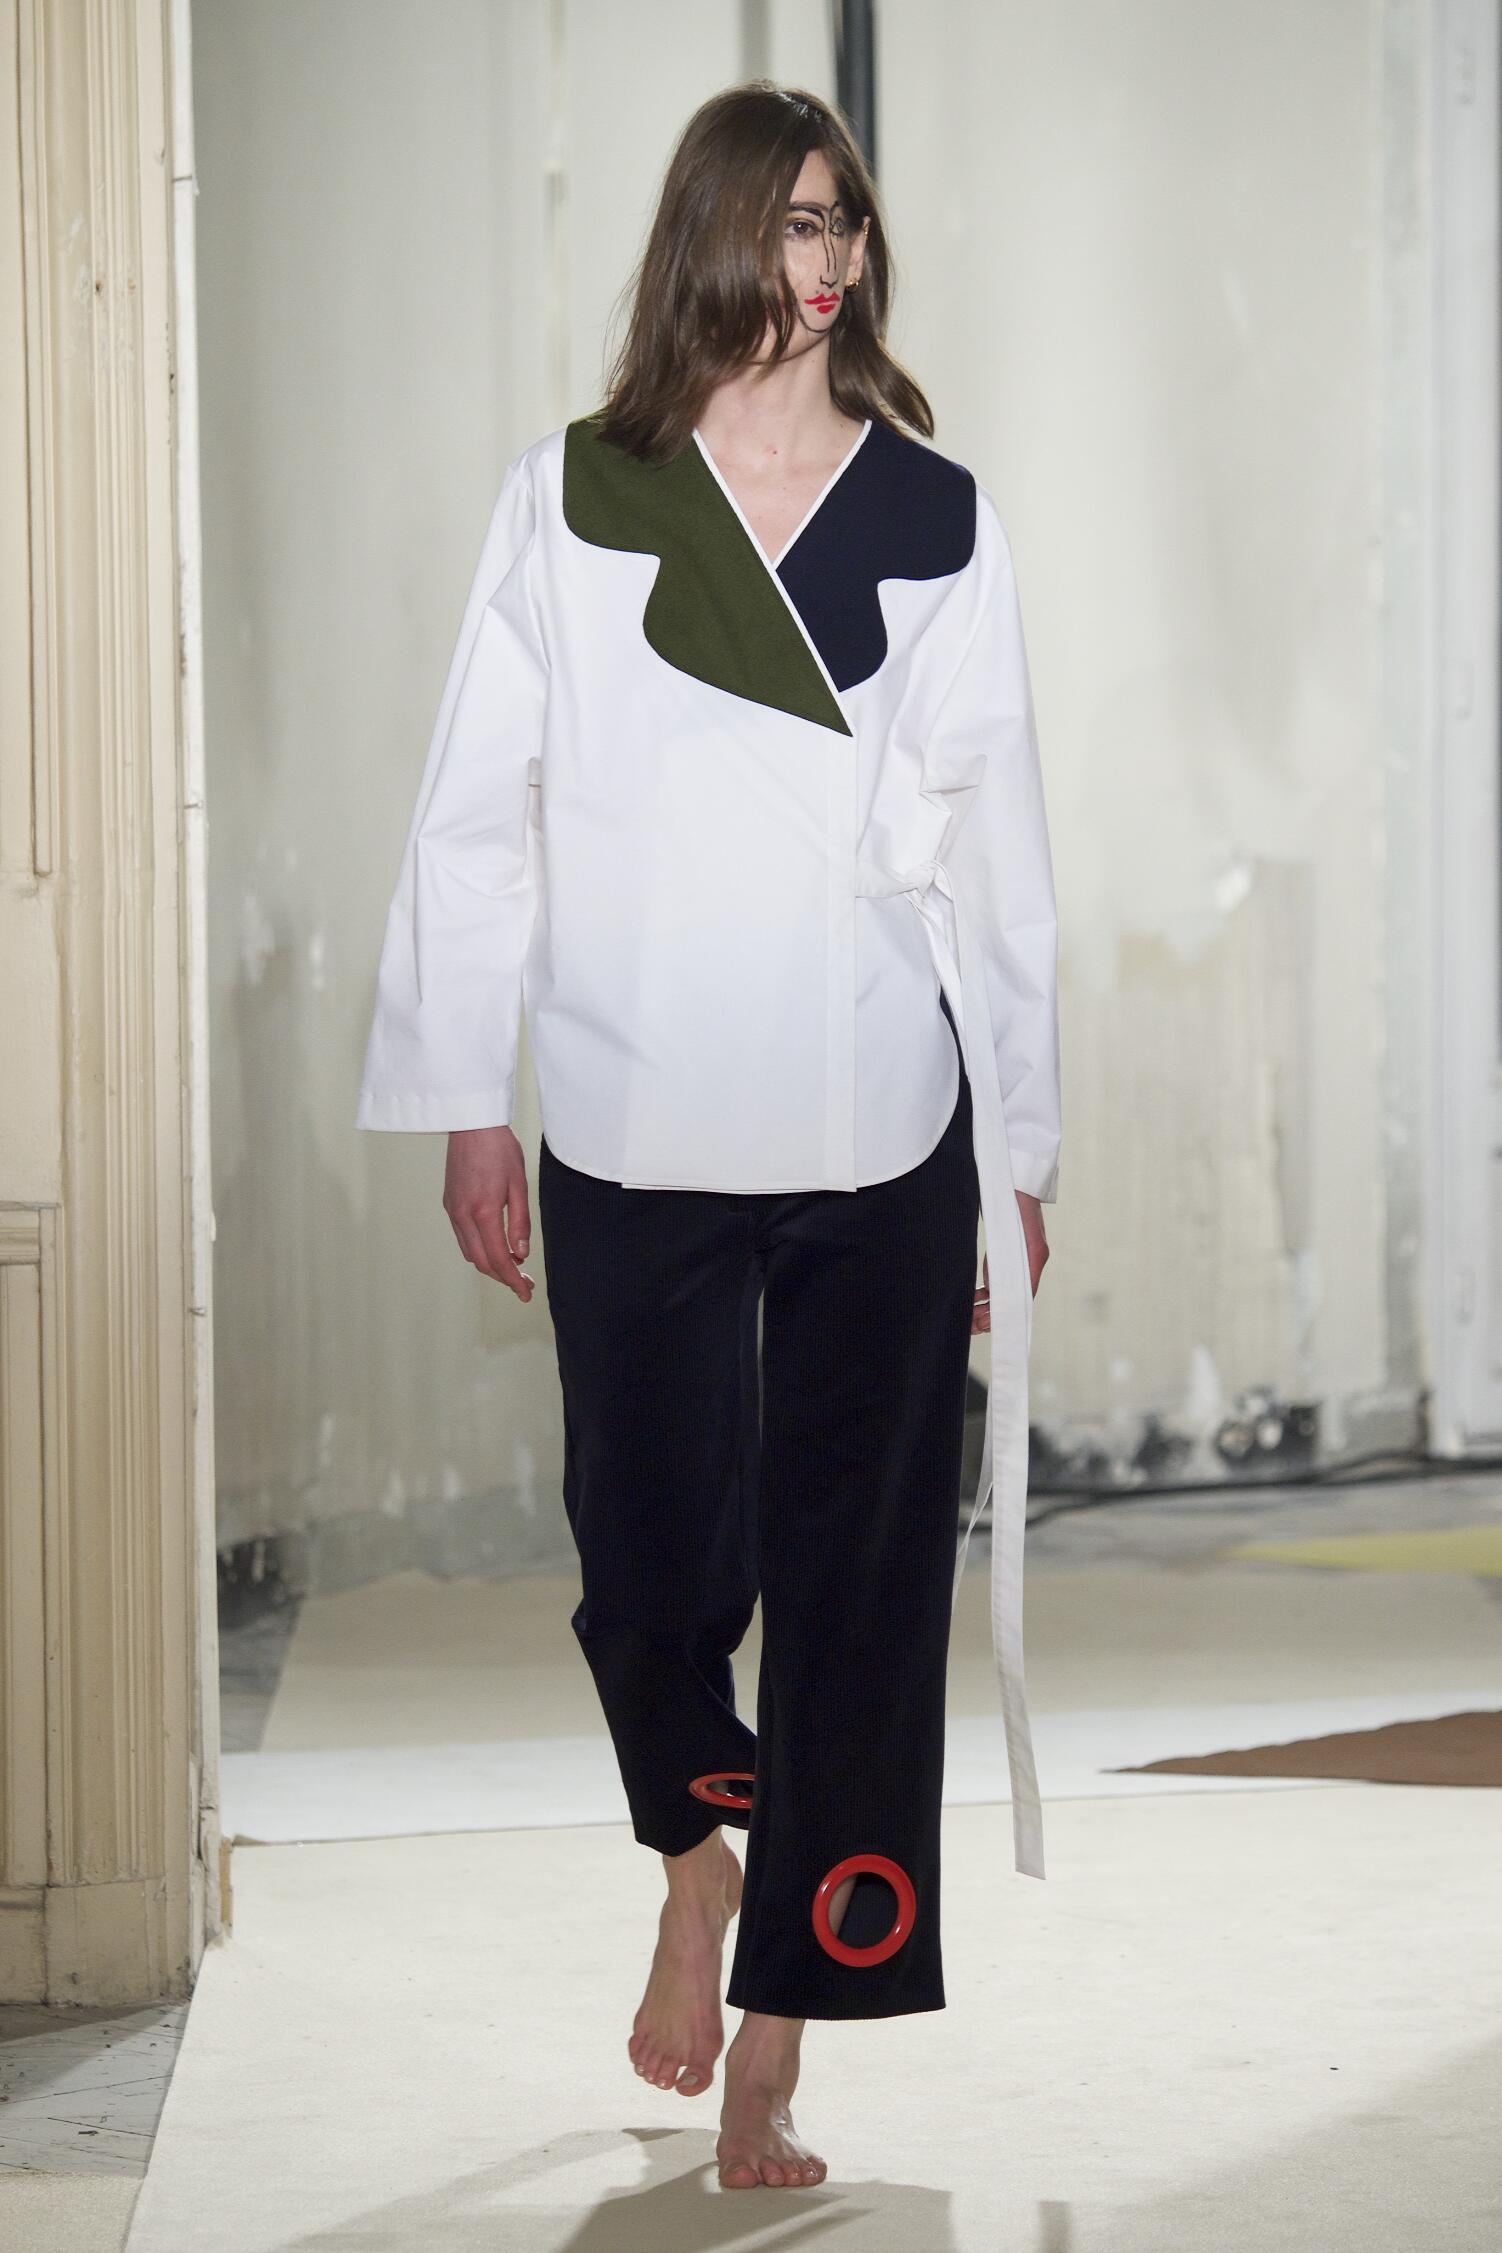 Winter 2015 Fashion Trends Jacquemus Collection